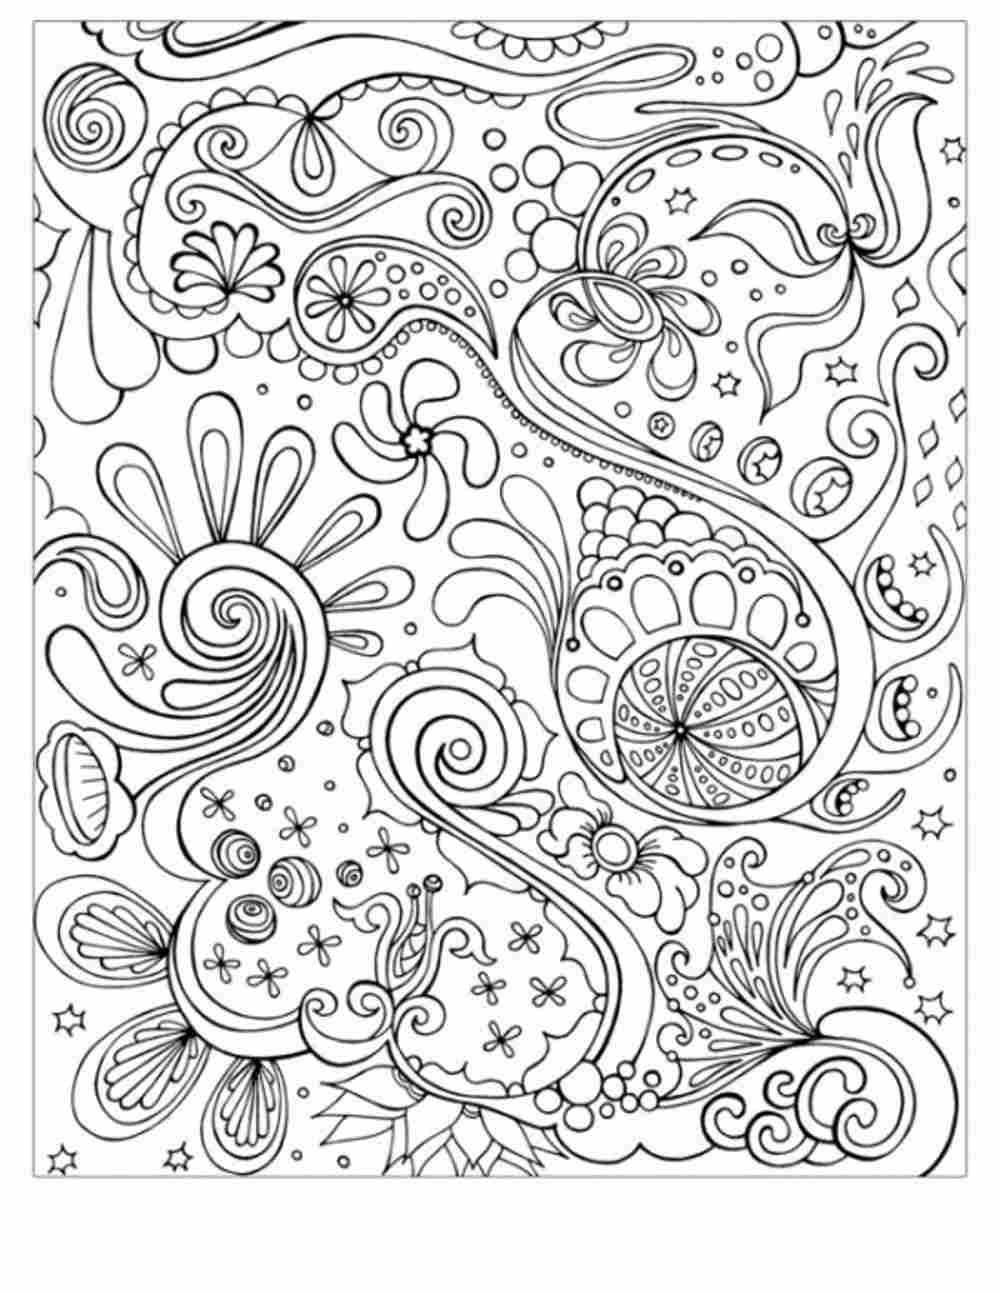 Abstract adult colouring pages only coloring pages for Free coloring pages for adults only